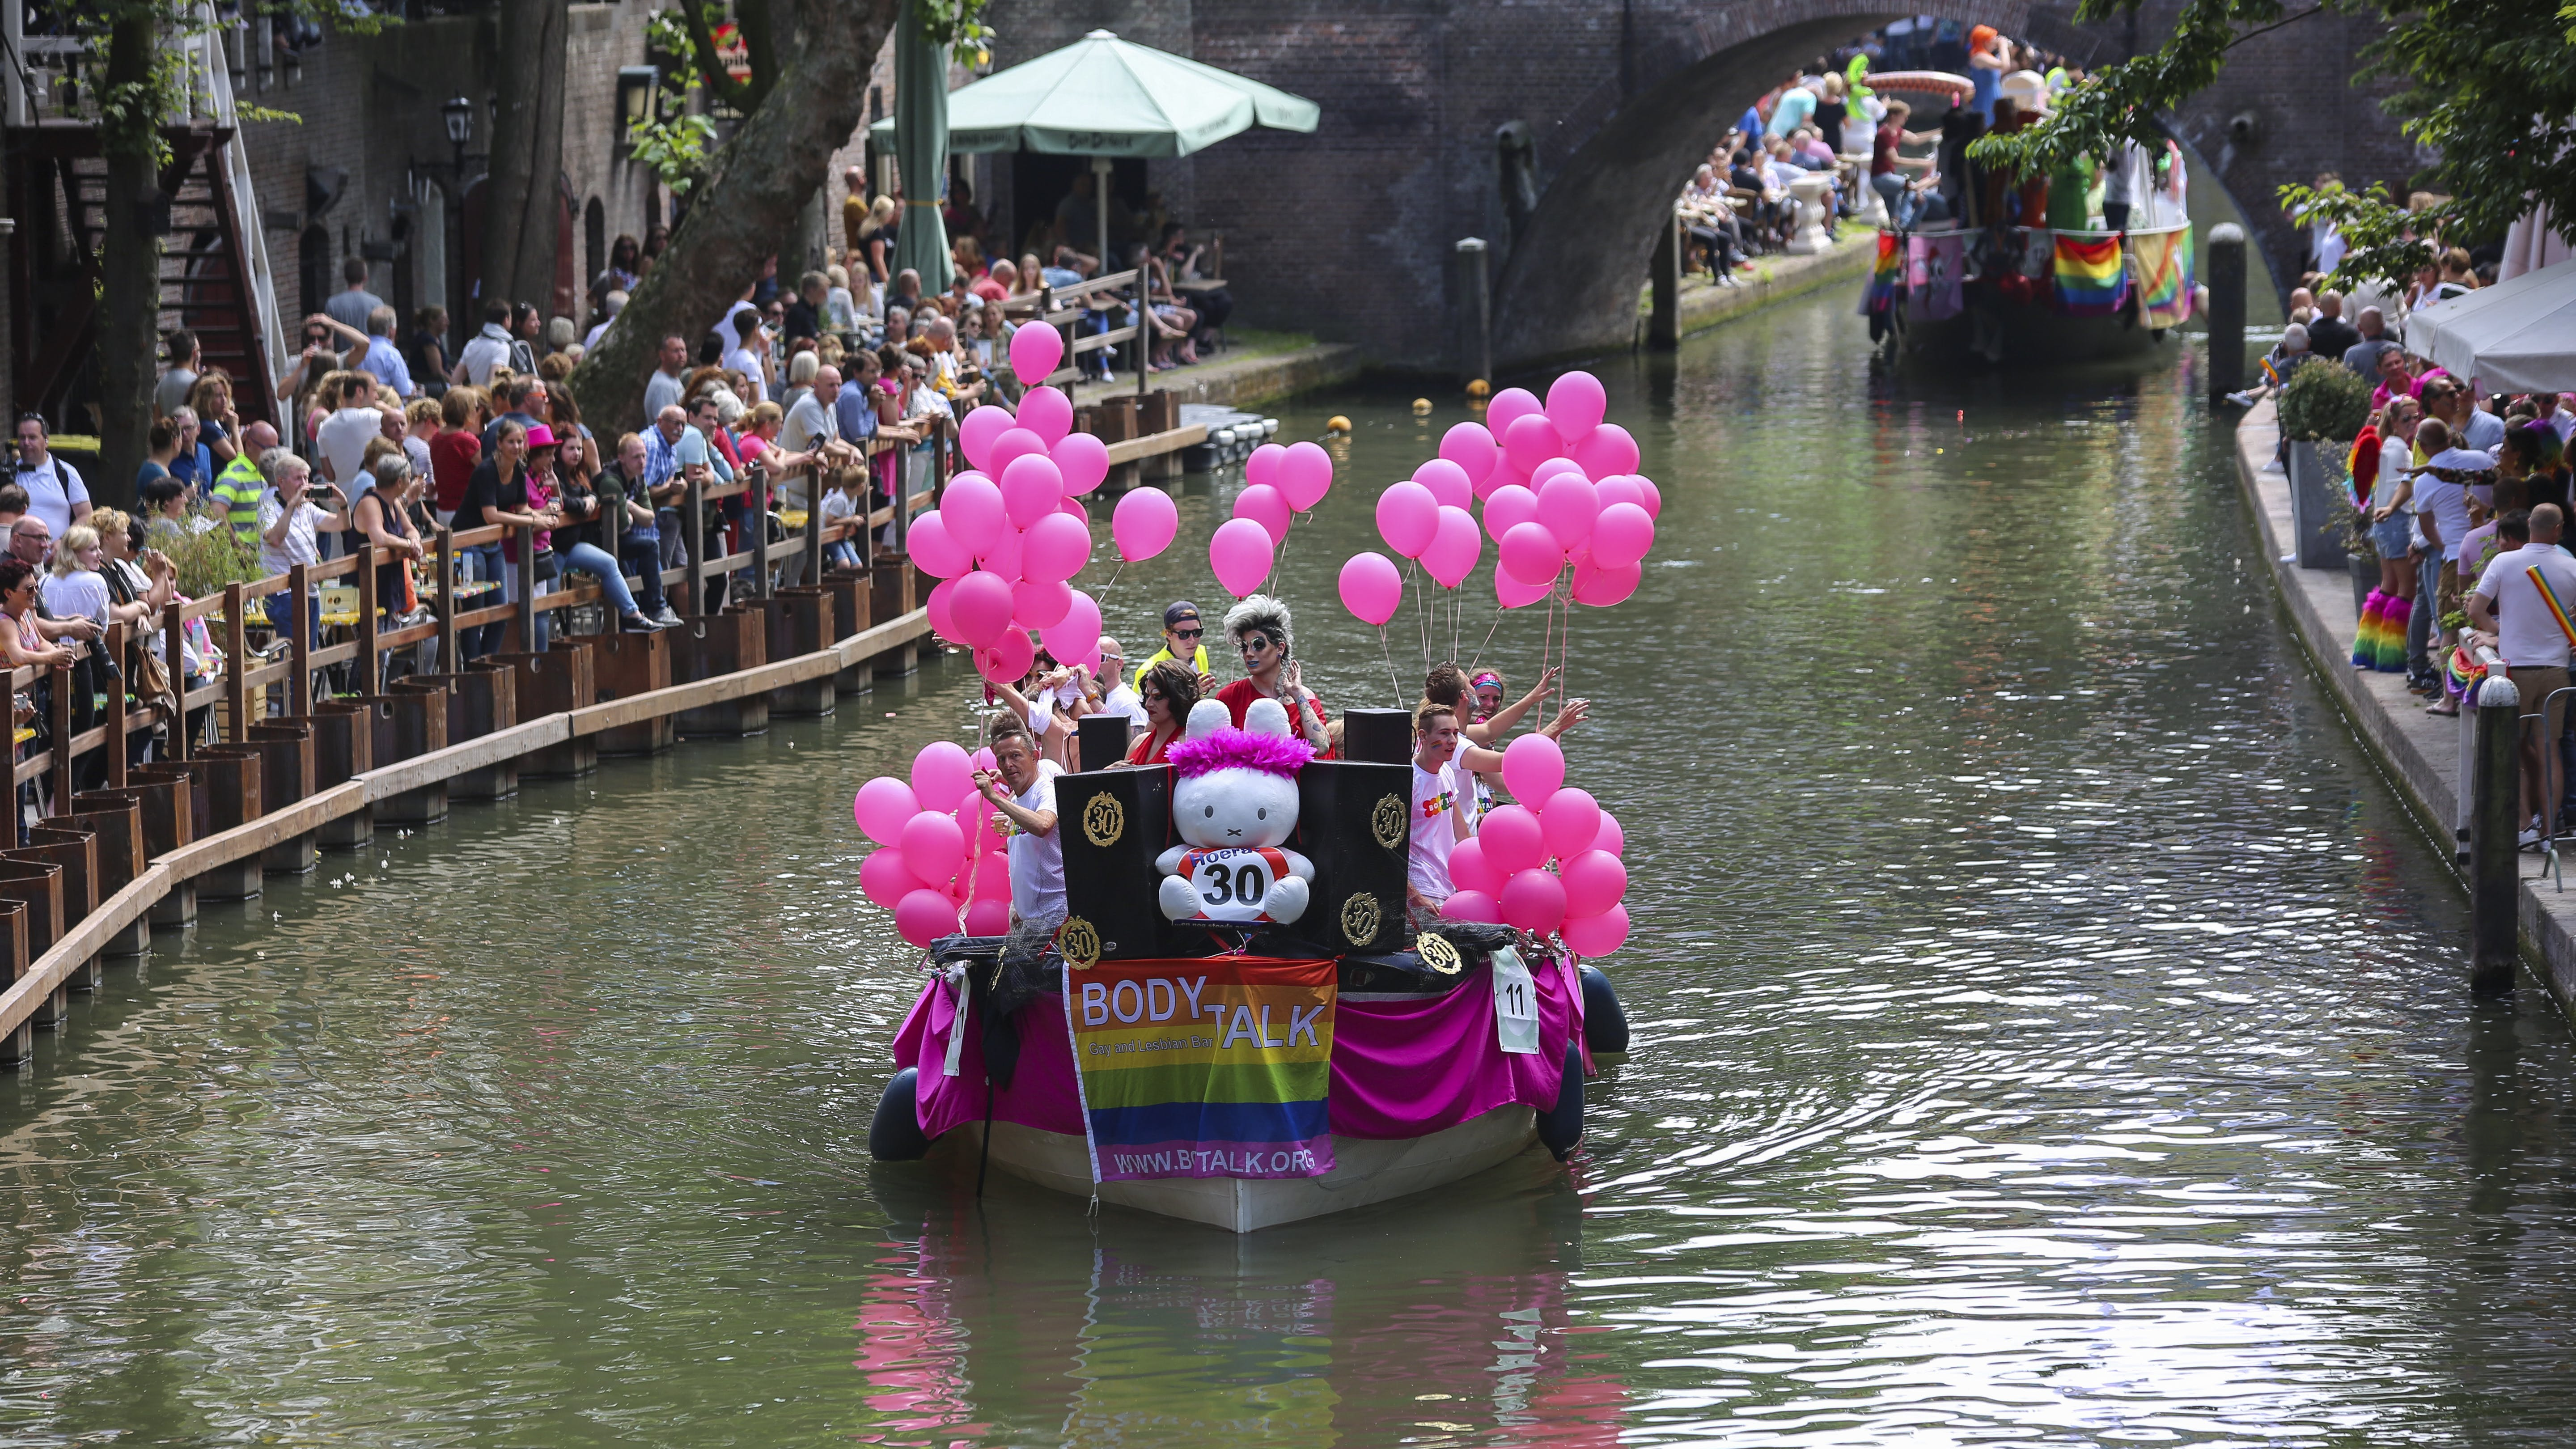 People on Boat With Pink Balloons